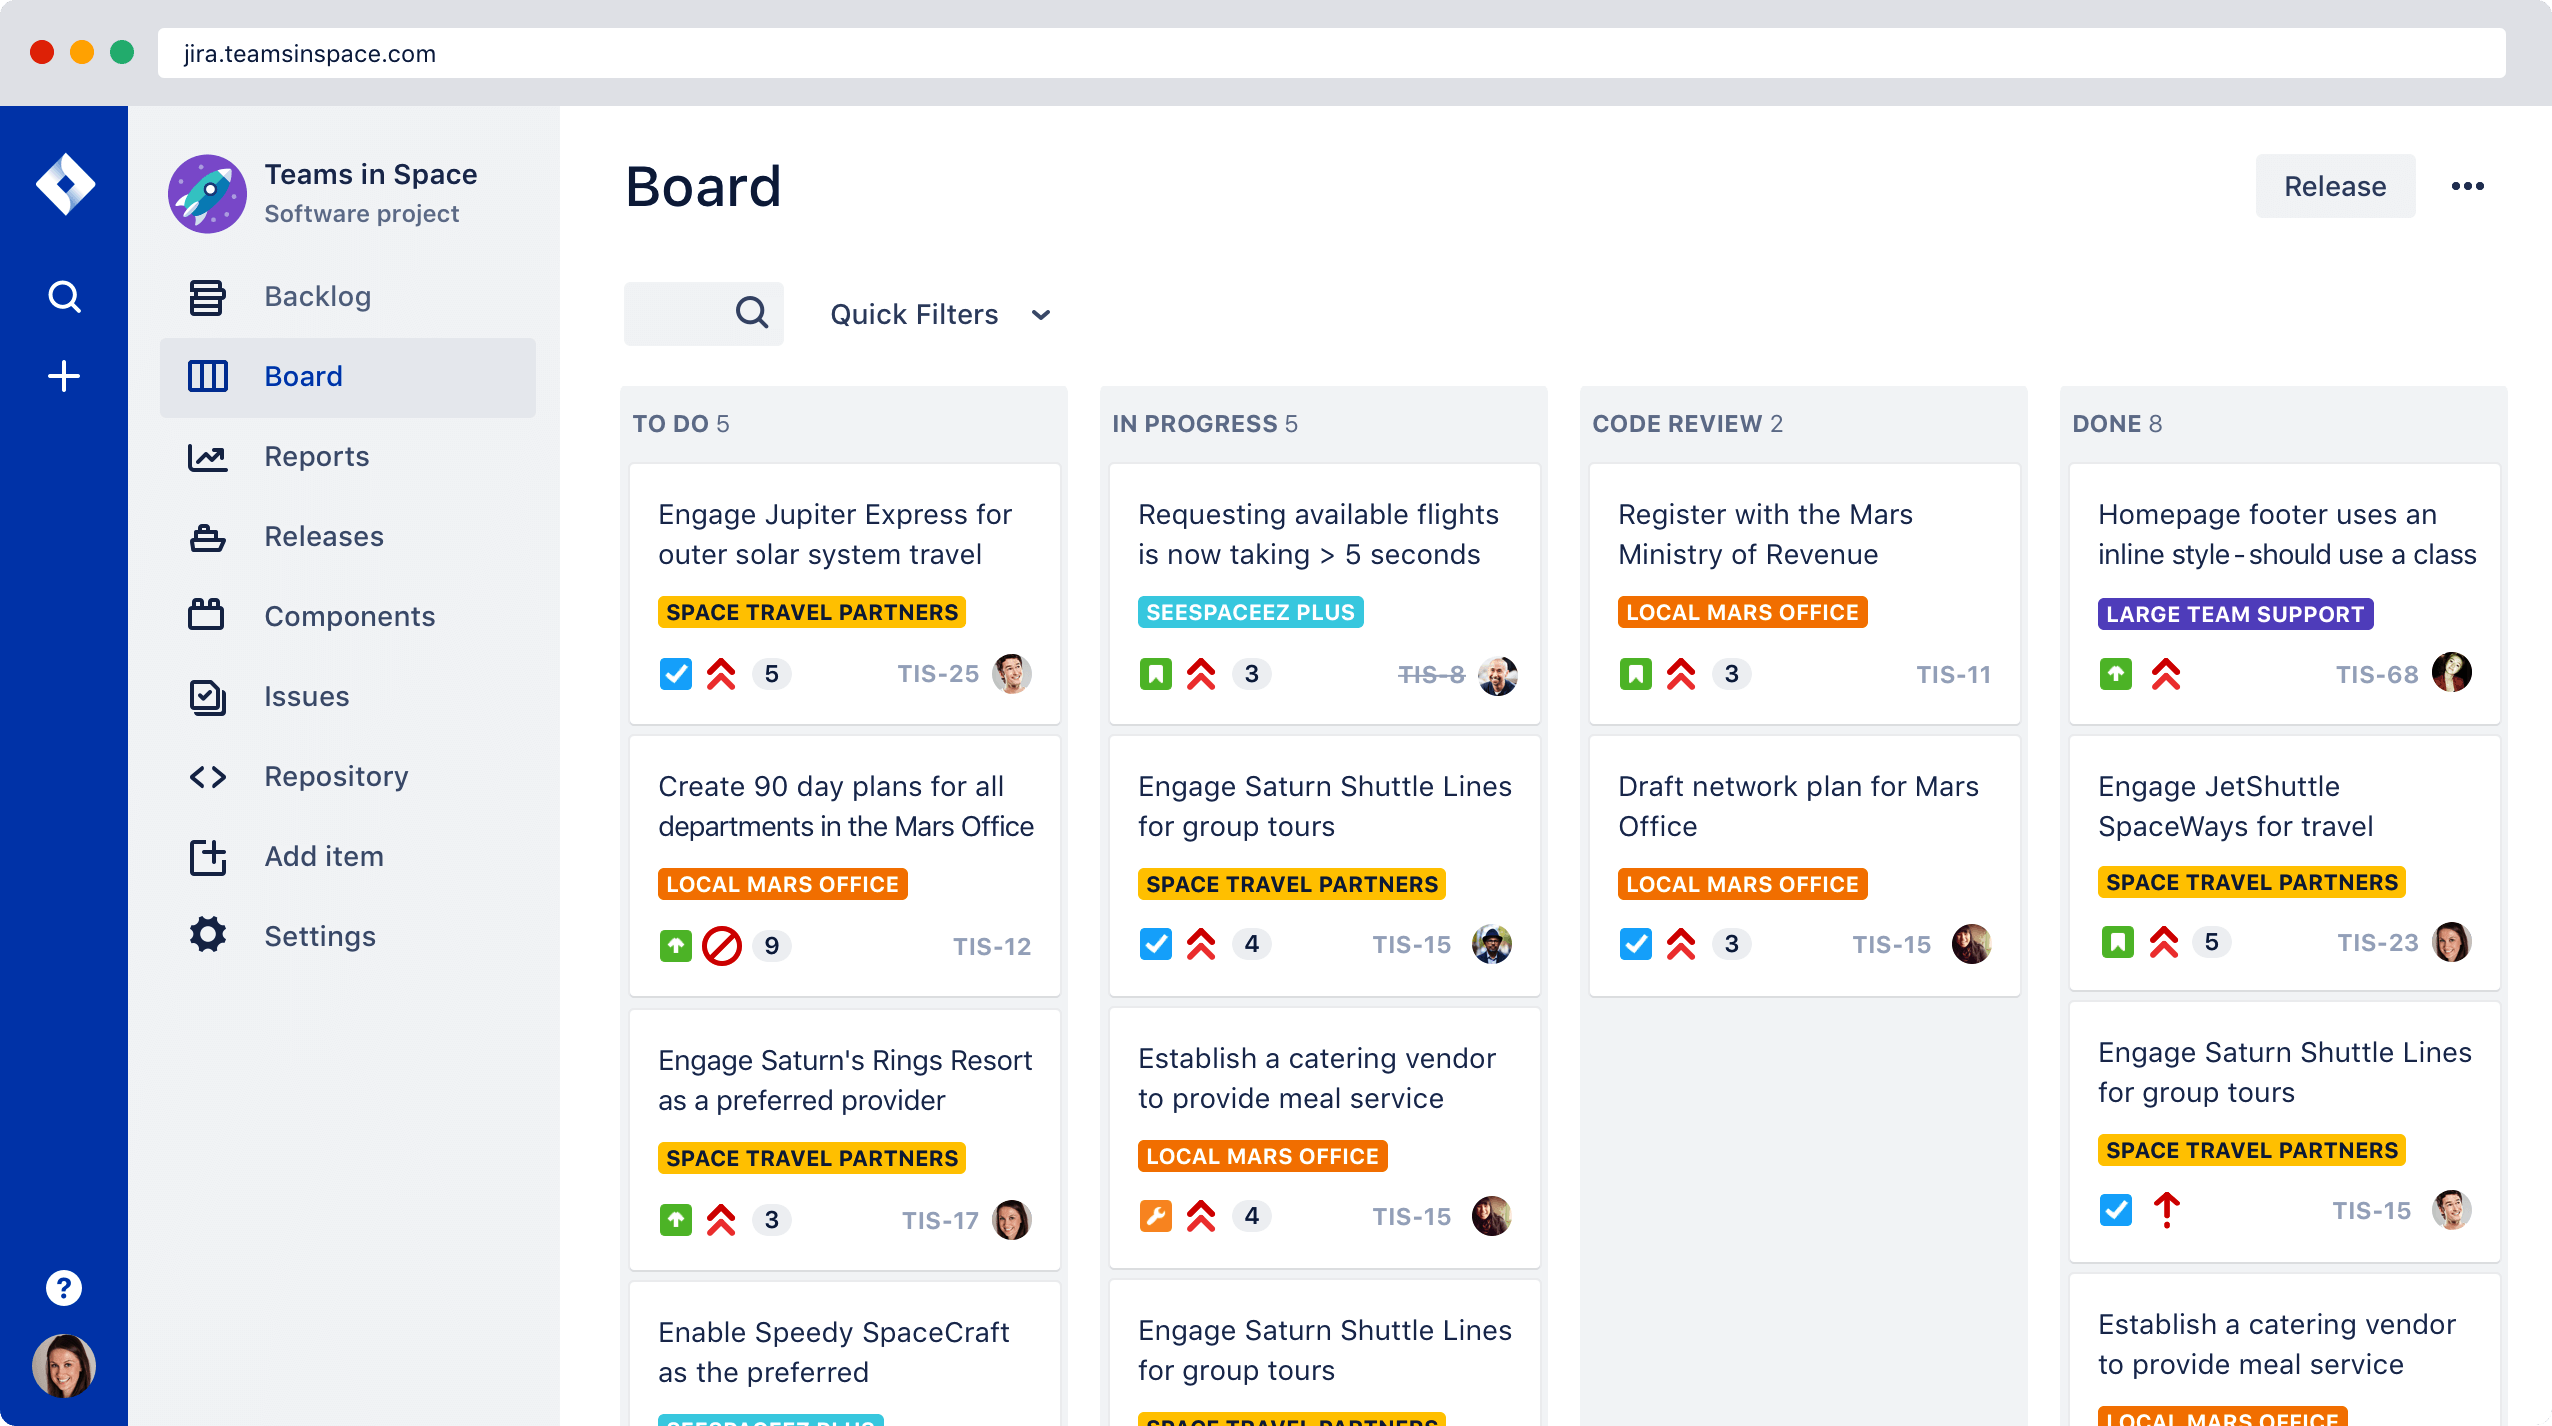 JIRA online task management software for teams